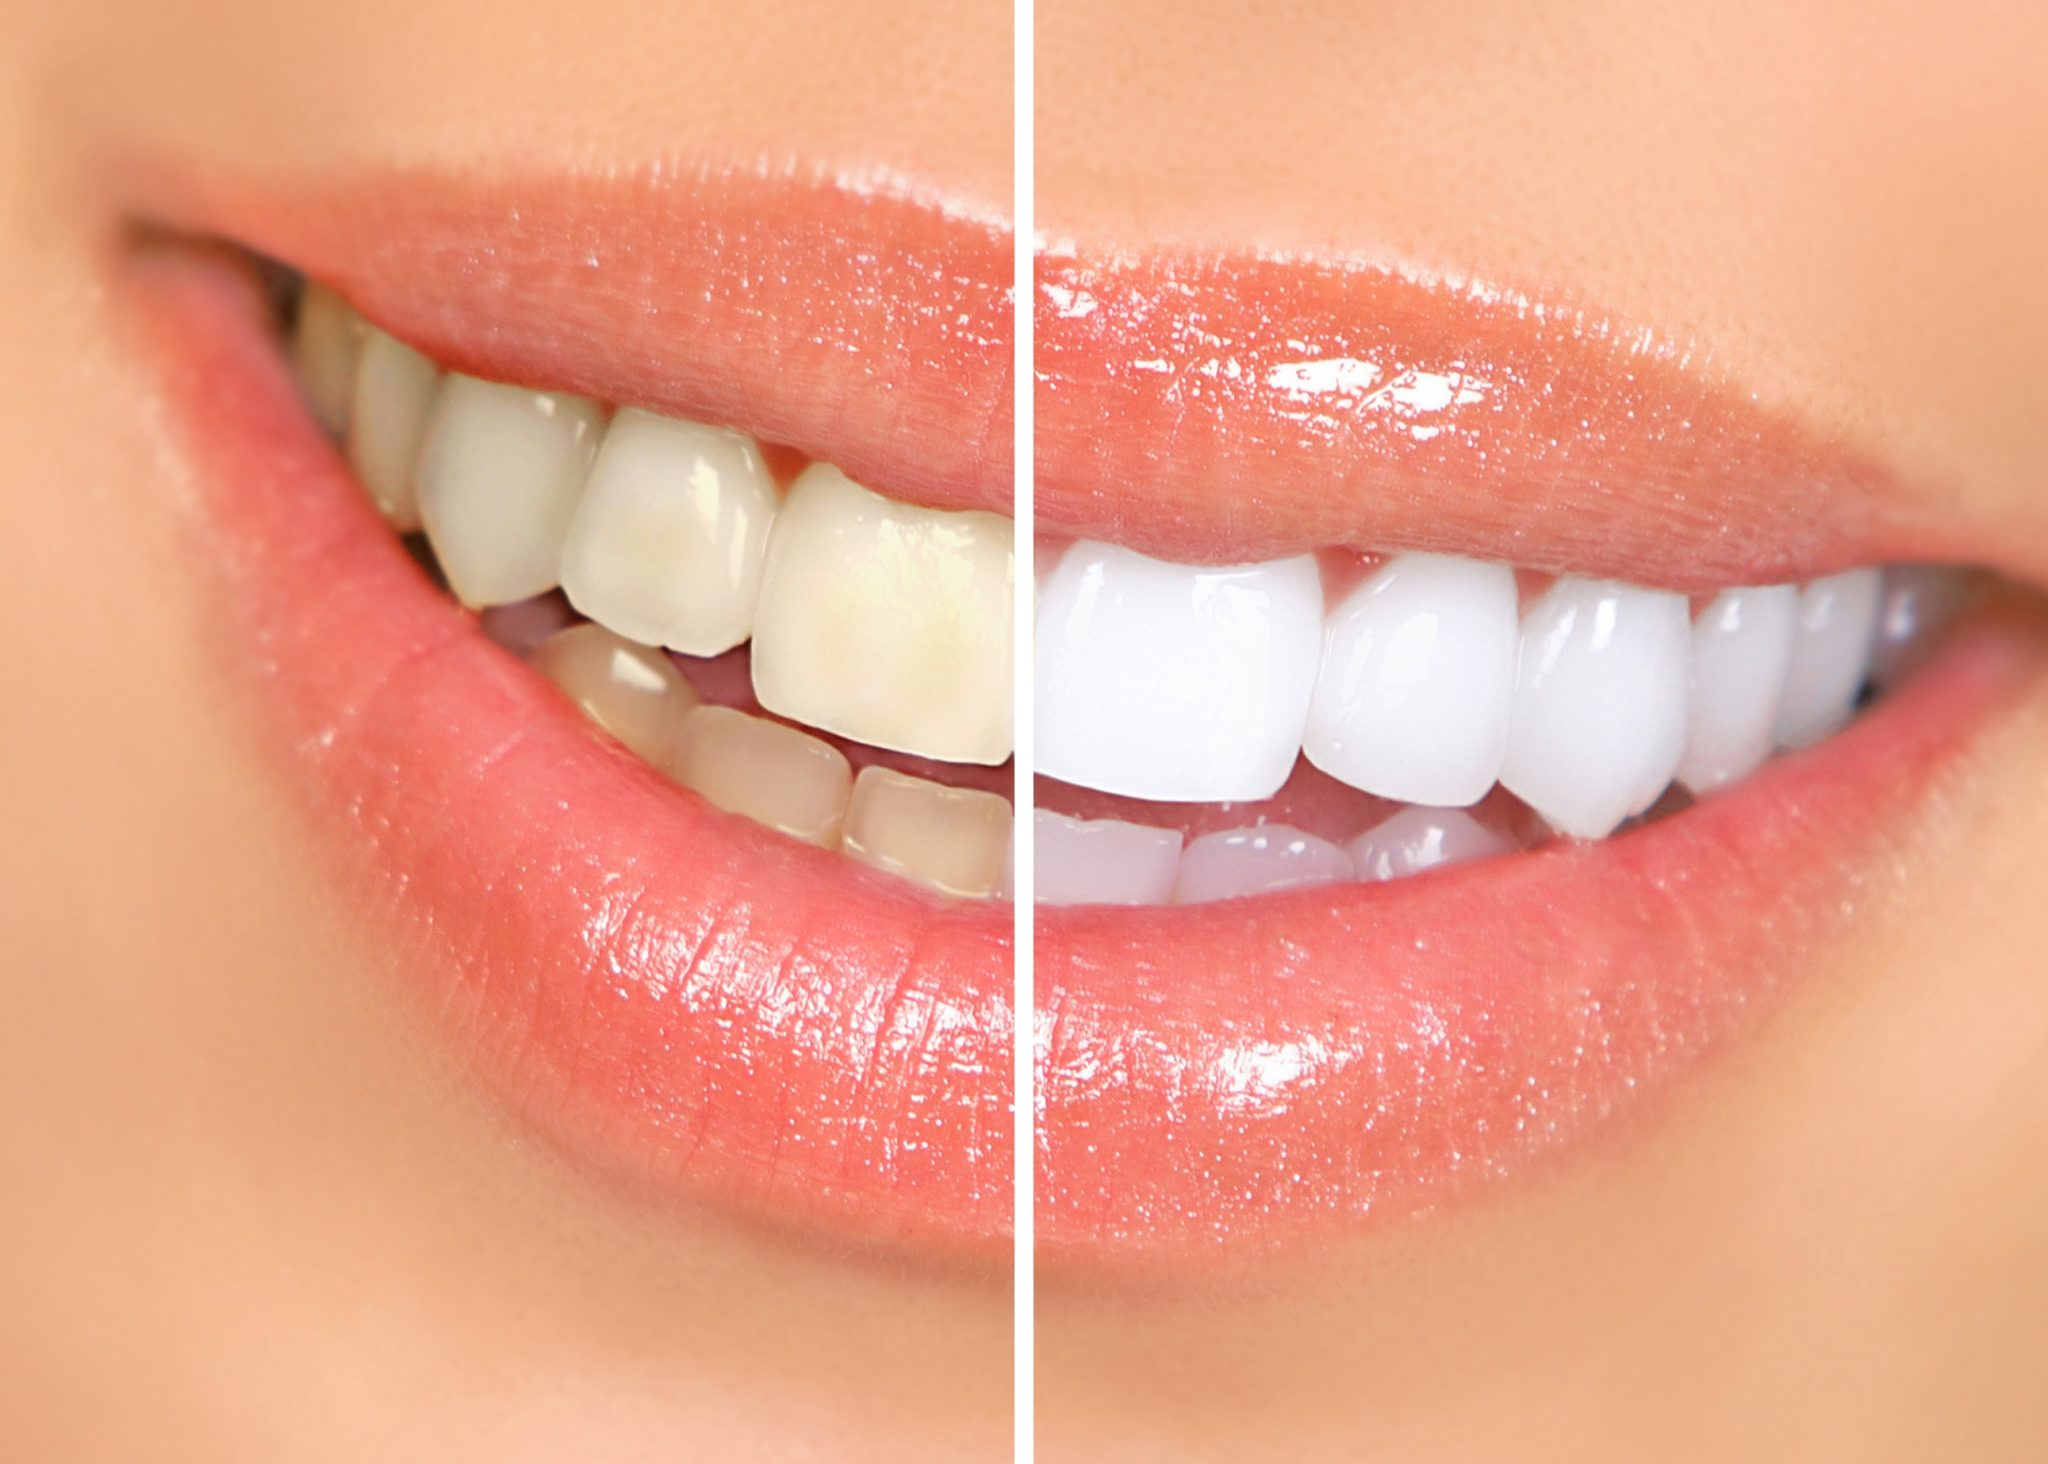 Image Credit: drperrone.com/blog/want-a-whiter-smile/